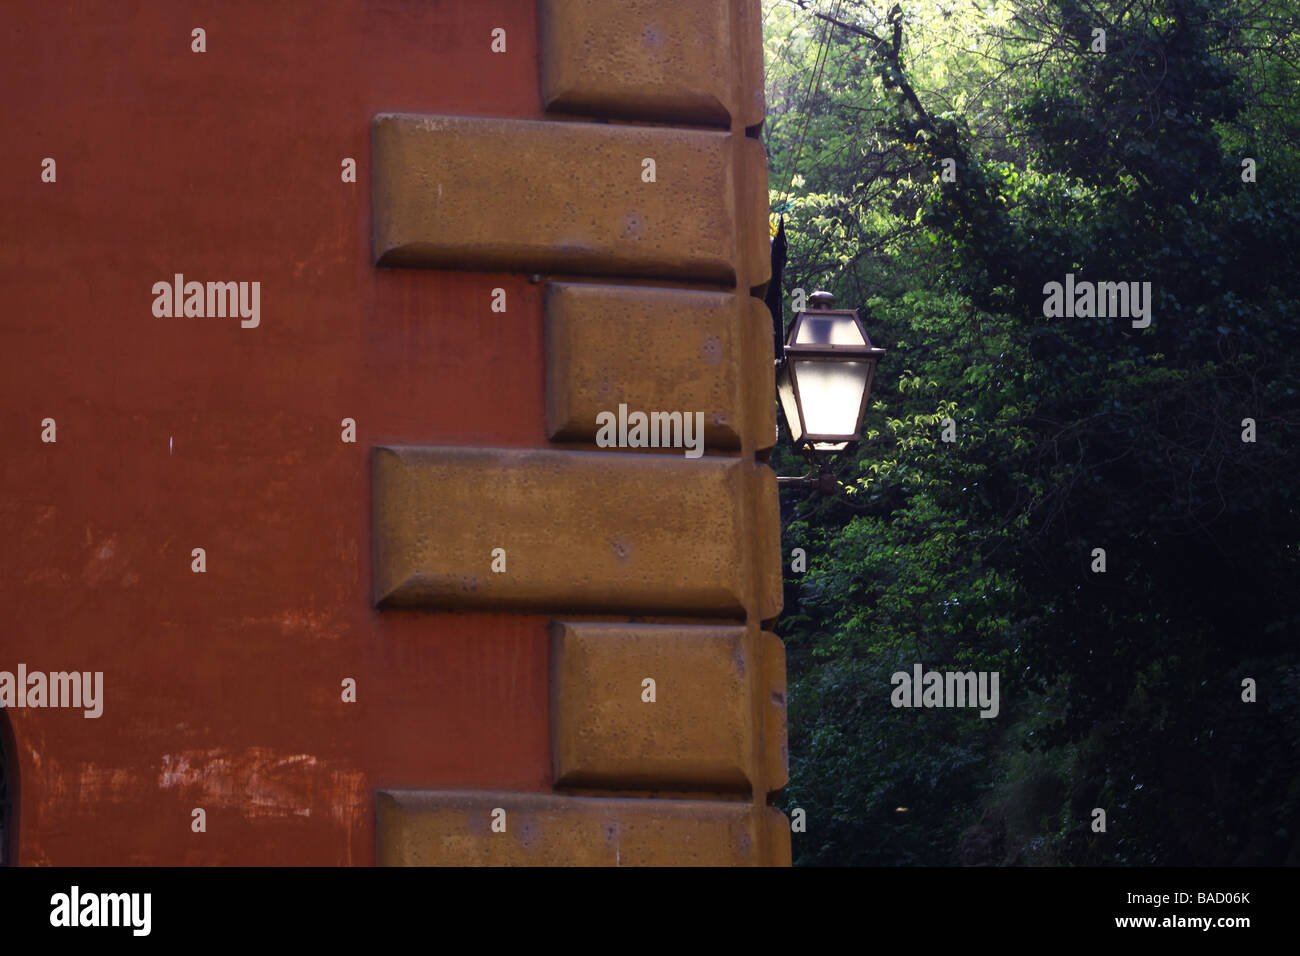 Wall with street lamp on a street of Trastevere, Rome, Italy. - Stock Image